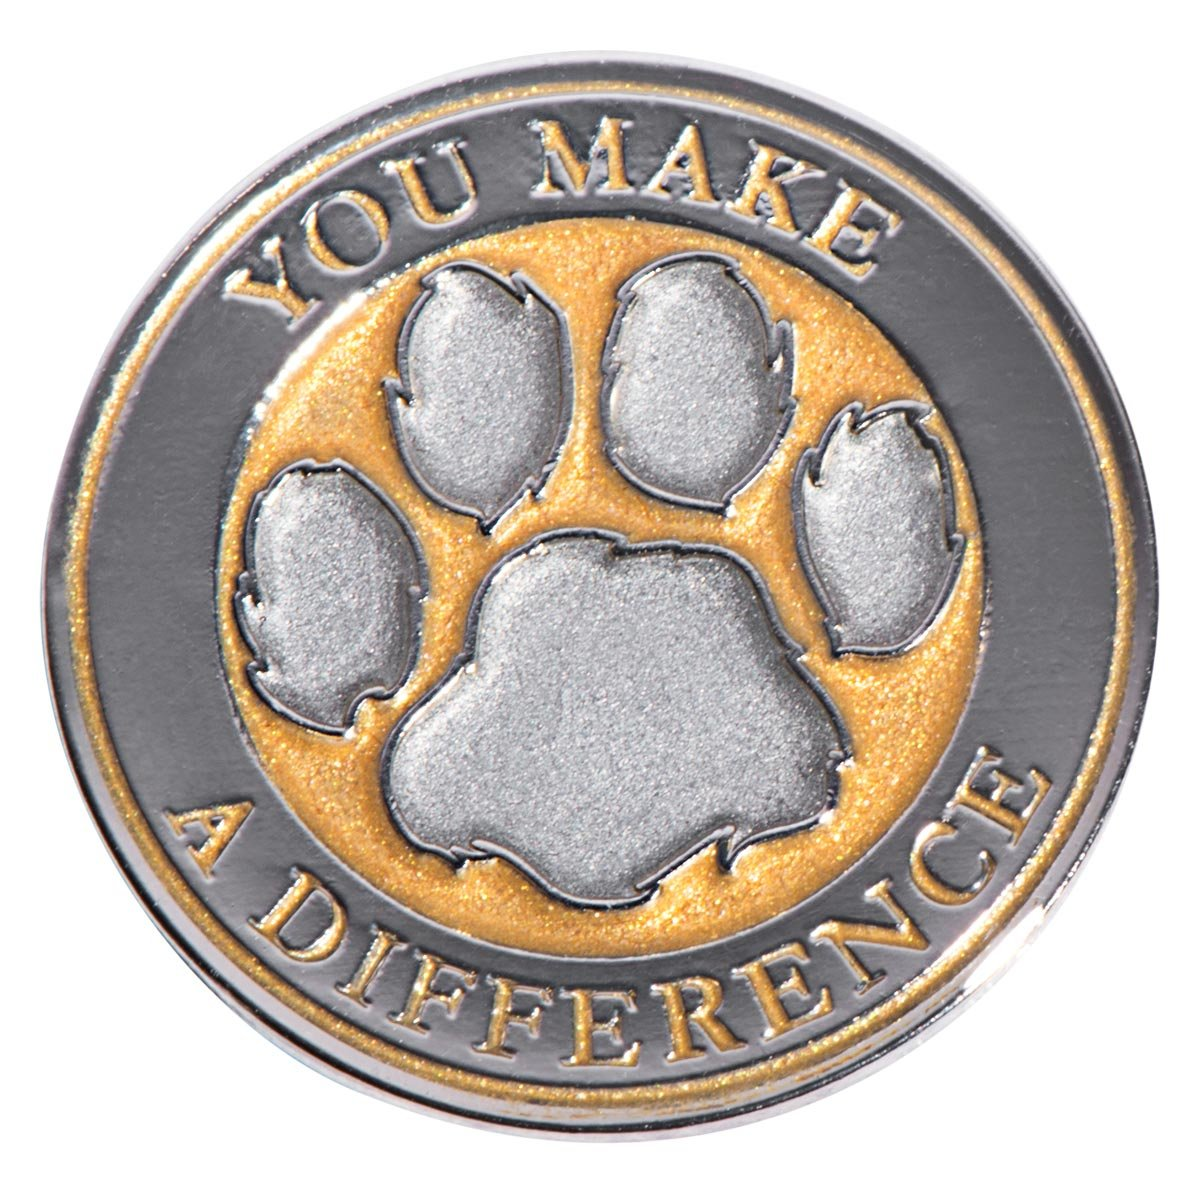 You Make a Difference Gold Award Pins, 12 Pins by TCDesignerProducts